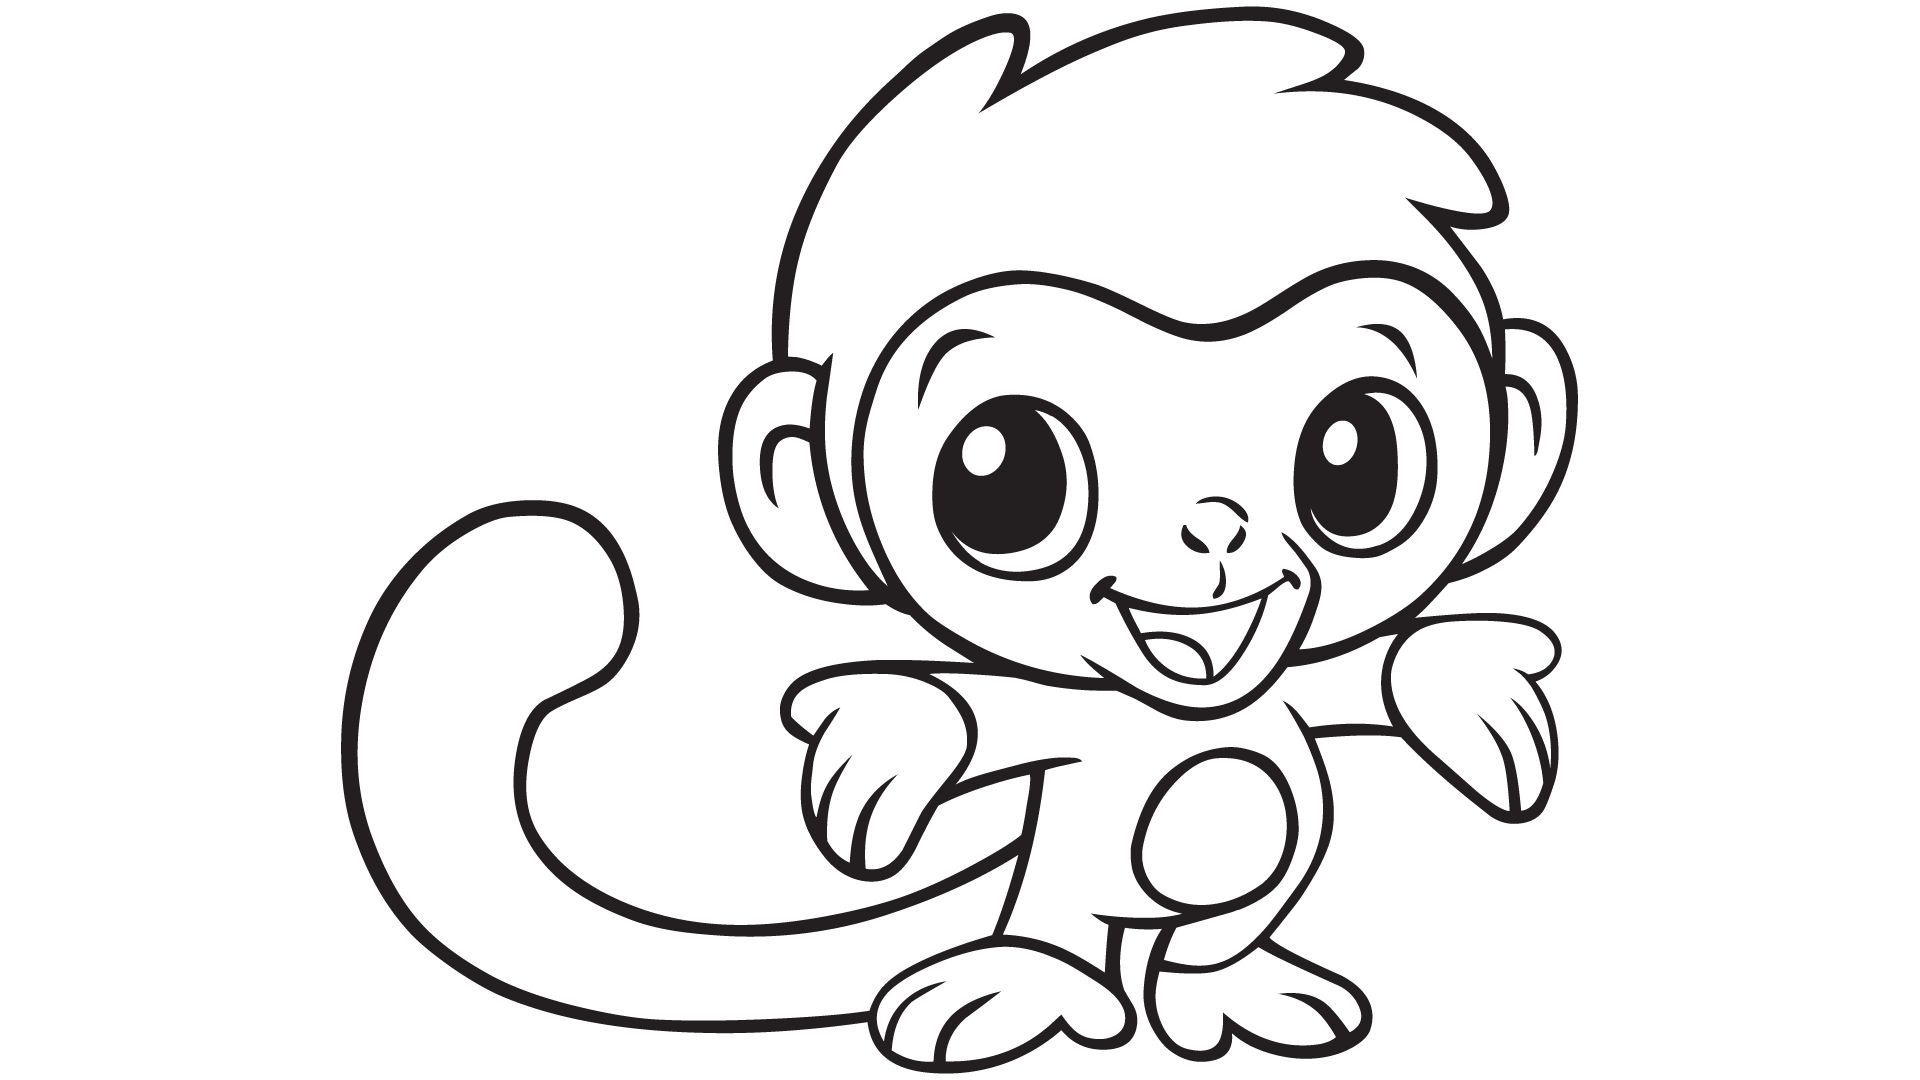 Baby Monkey Coloring Printable Monkey Coloring Pages Animal Coloring Pages Easy Coloring Pages